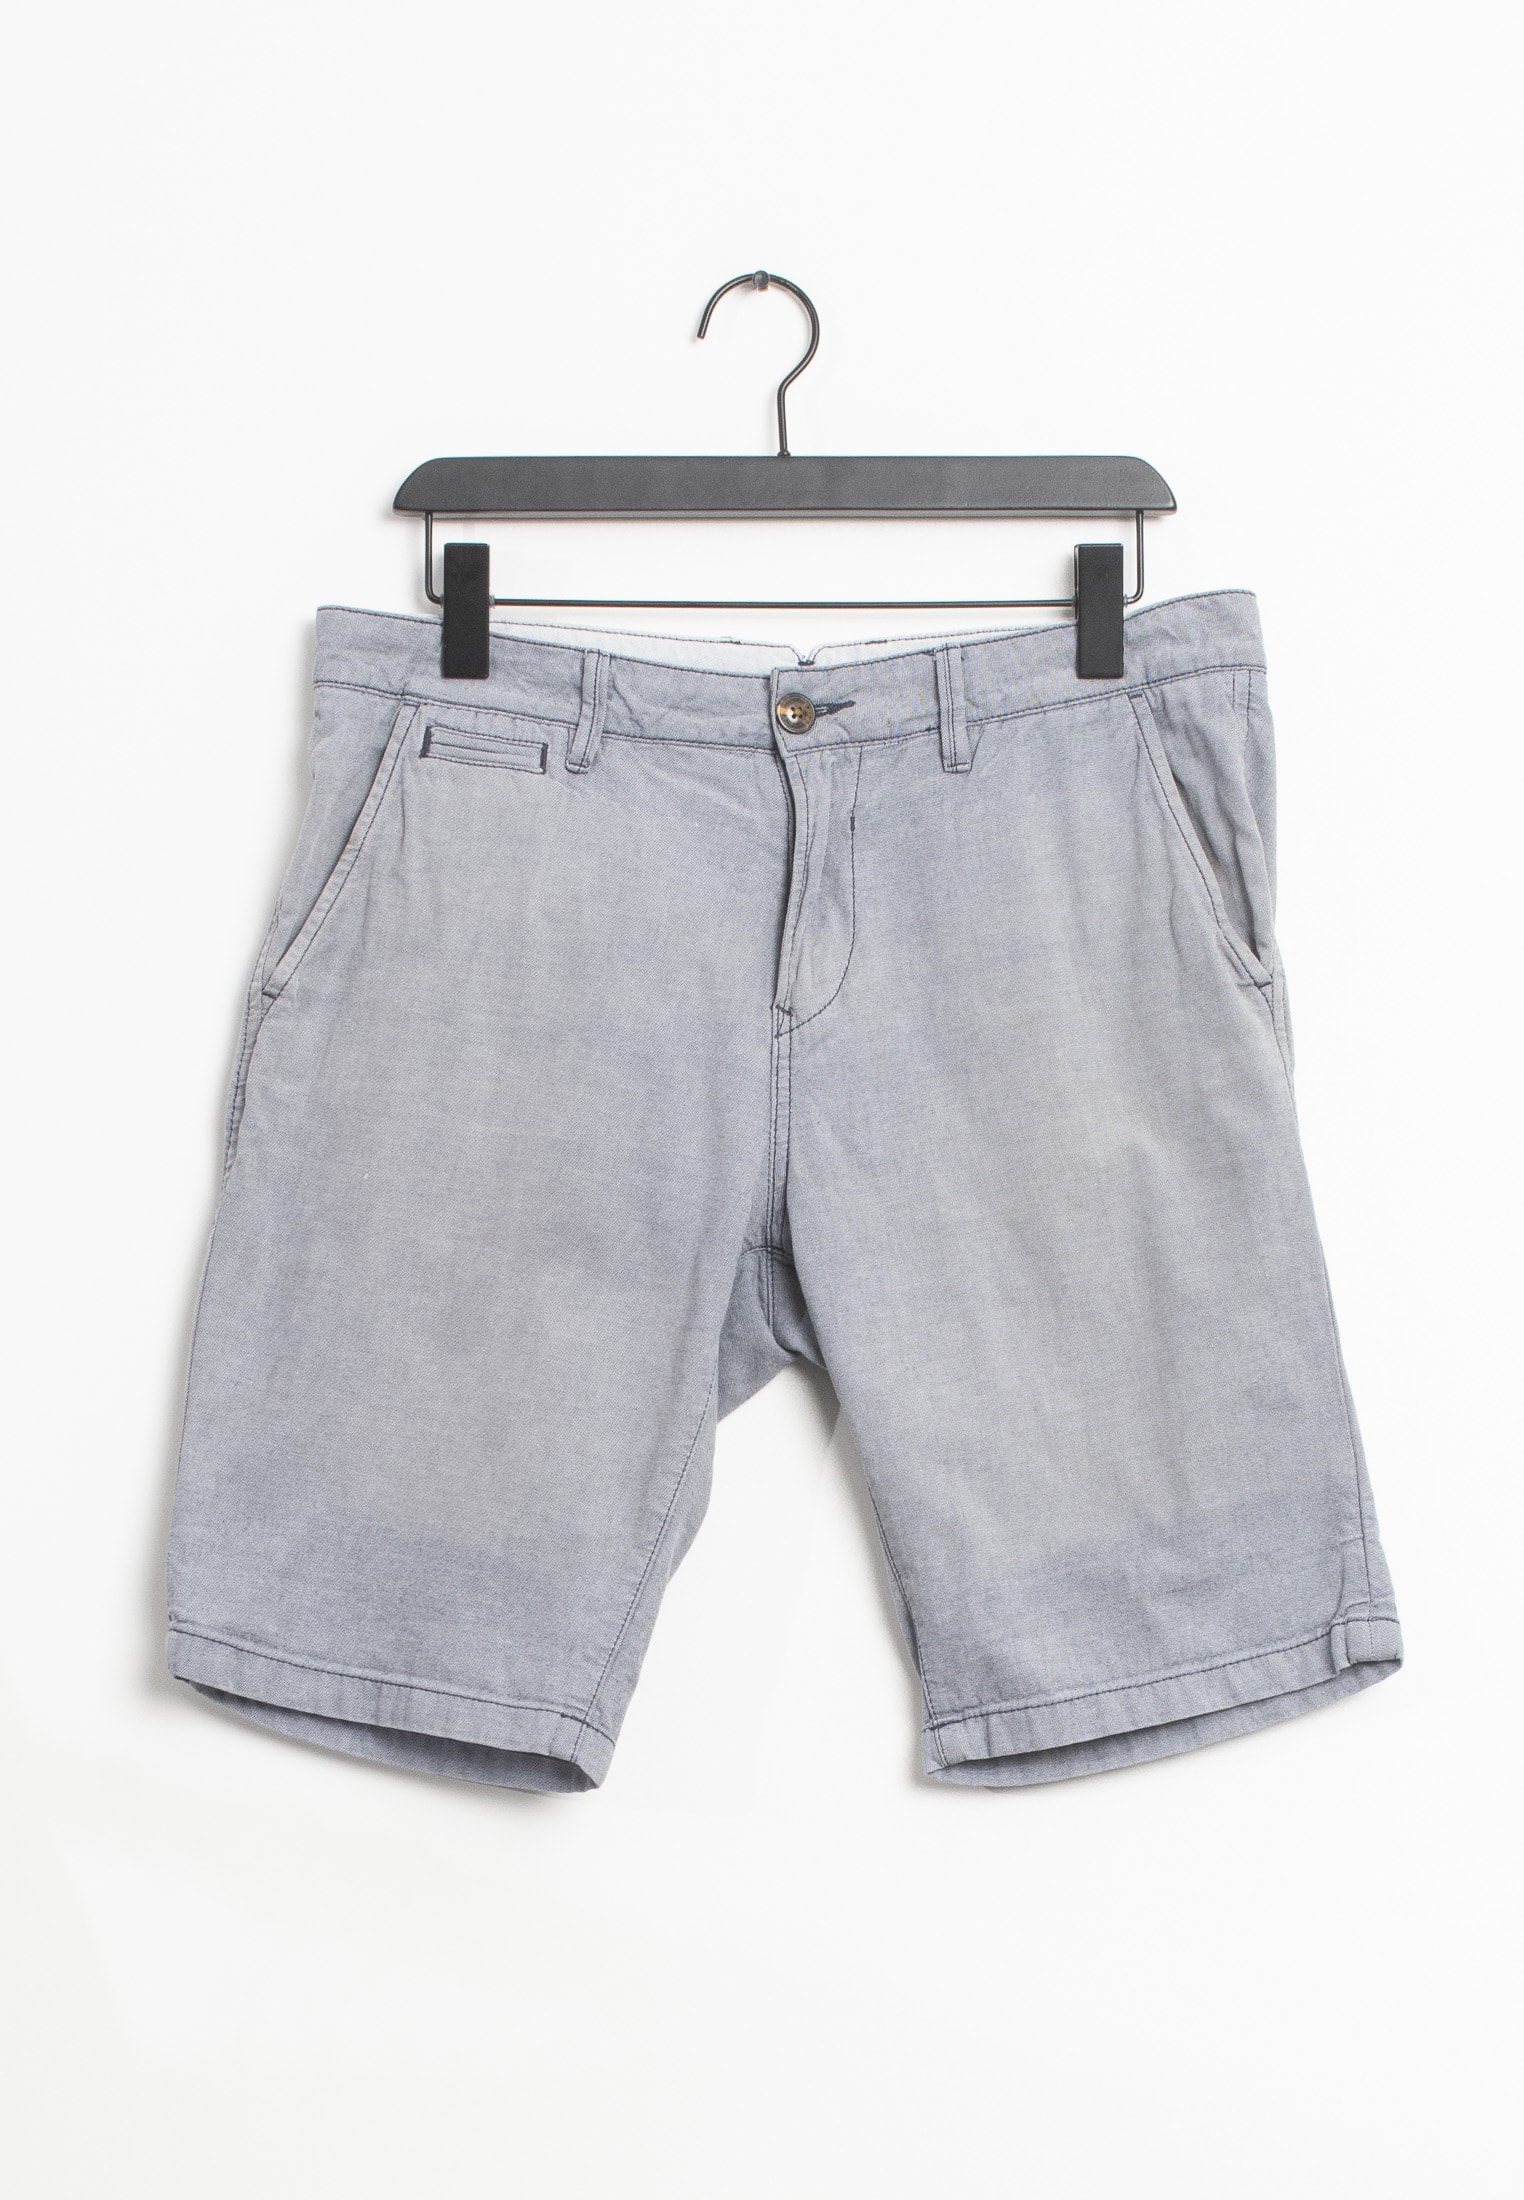 TOM TAILOR DENIM Shorts Blau Gr.M